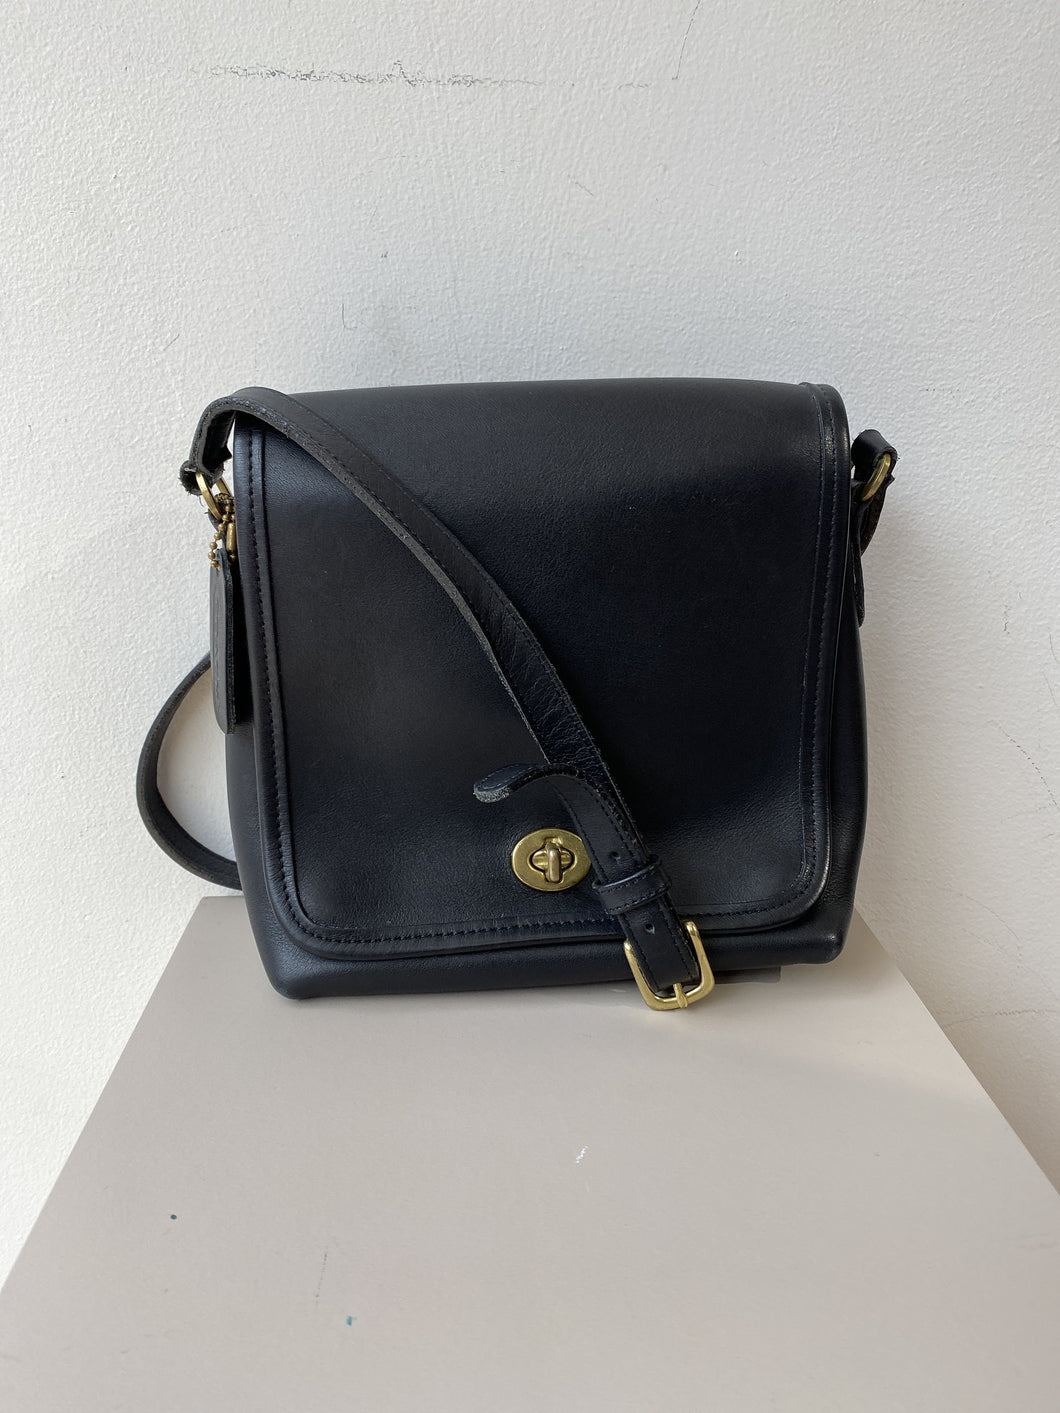 Coach black vintage leather crossbody 9076